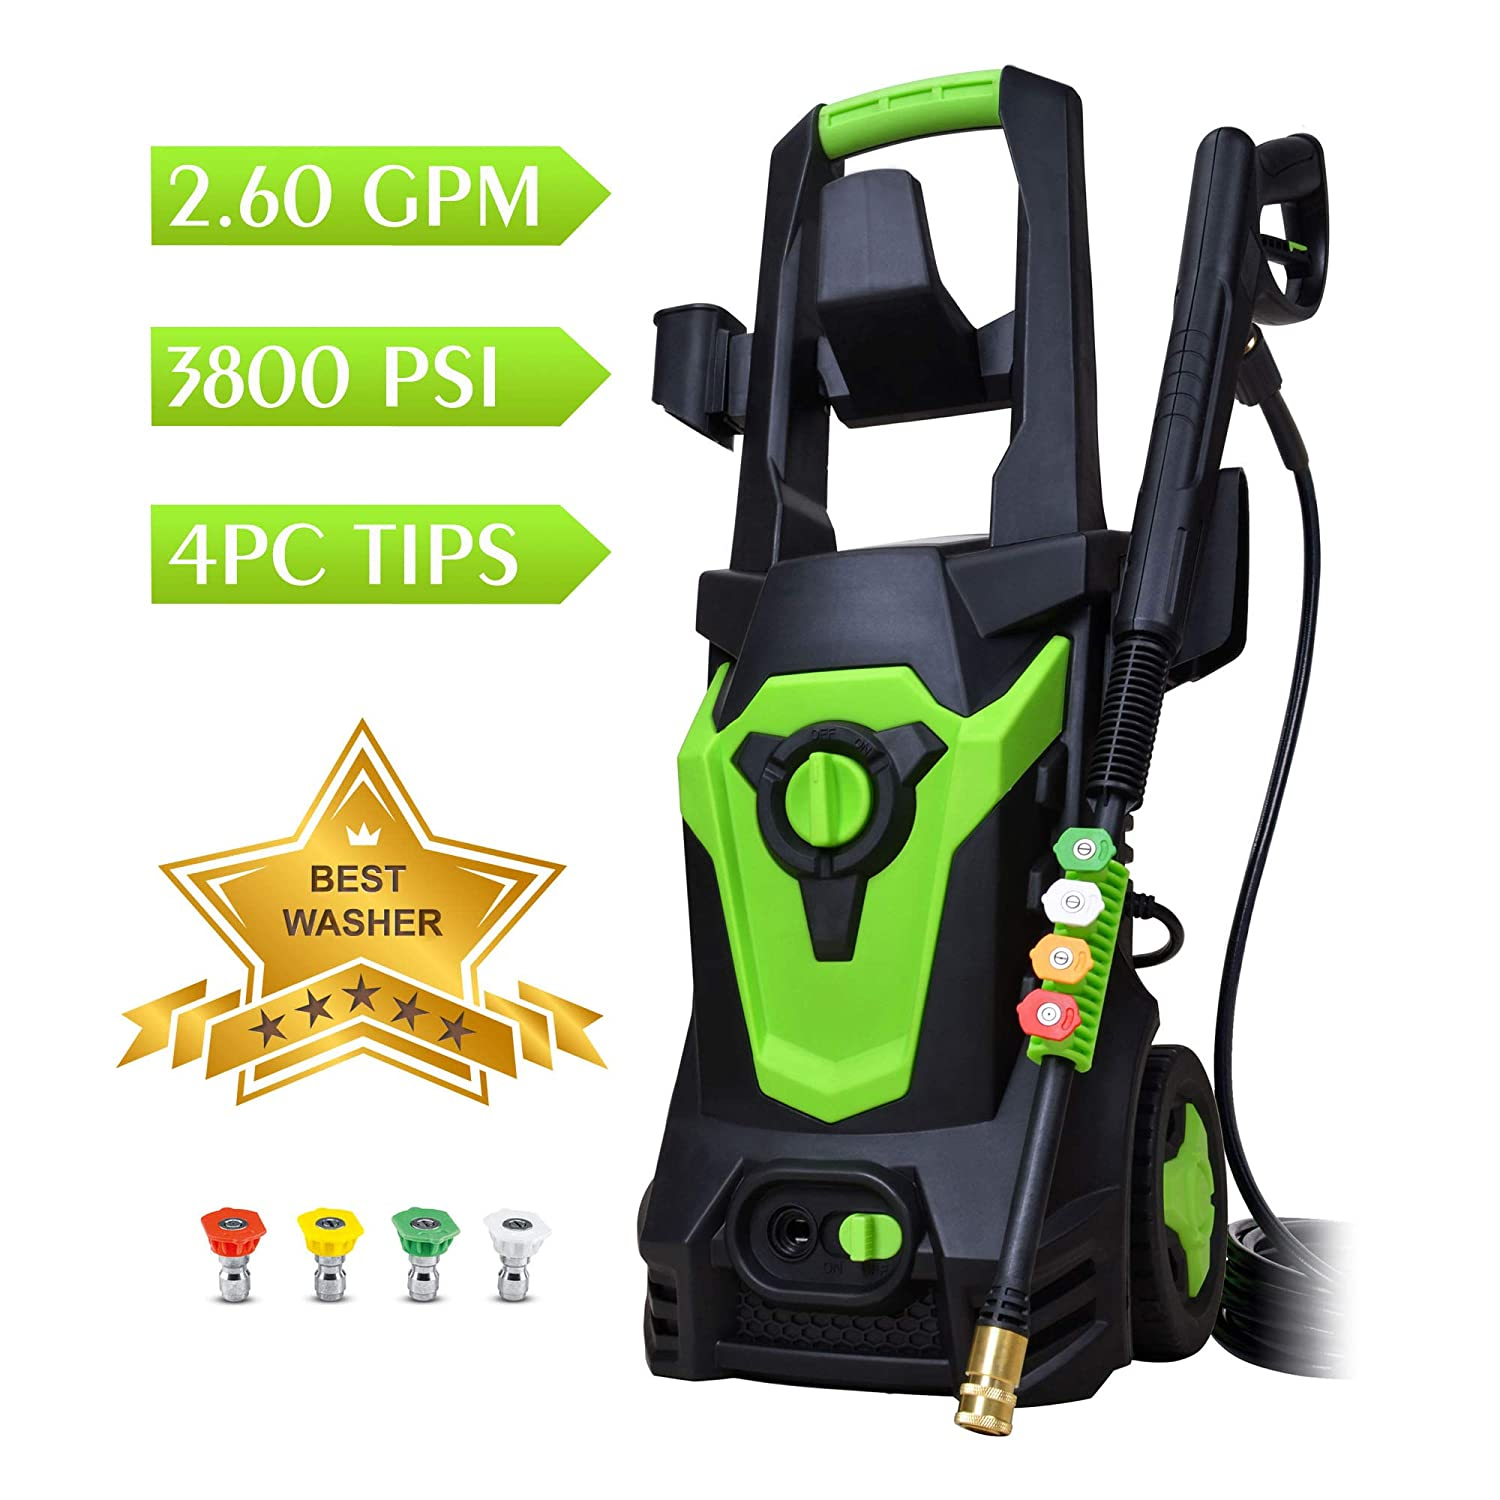 WATTY Electric Pressure Washer-3800PSI,2.6GPM, Long-Term Work Pressure Washer Cleaning Assistant, Helpful Helper for Household Cleaning Tasks